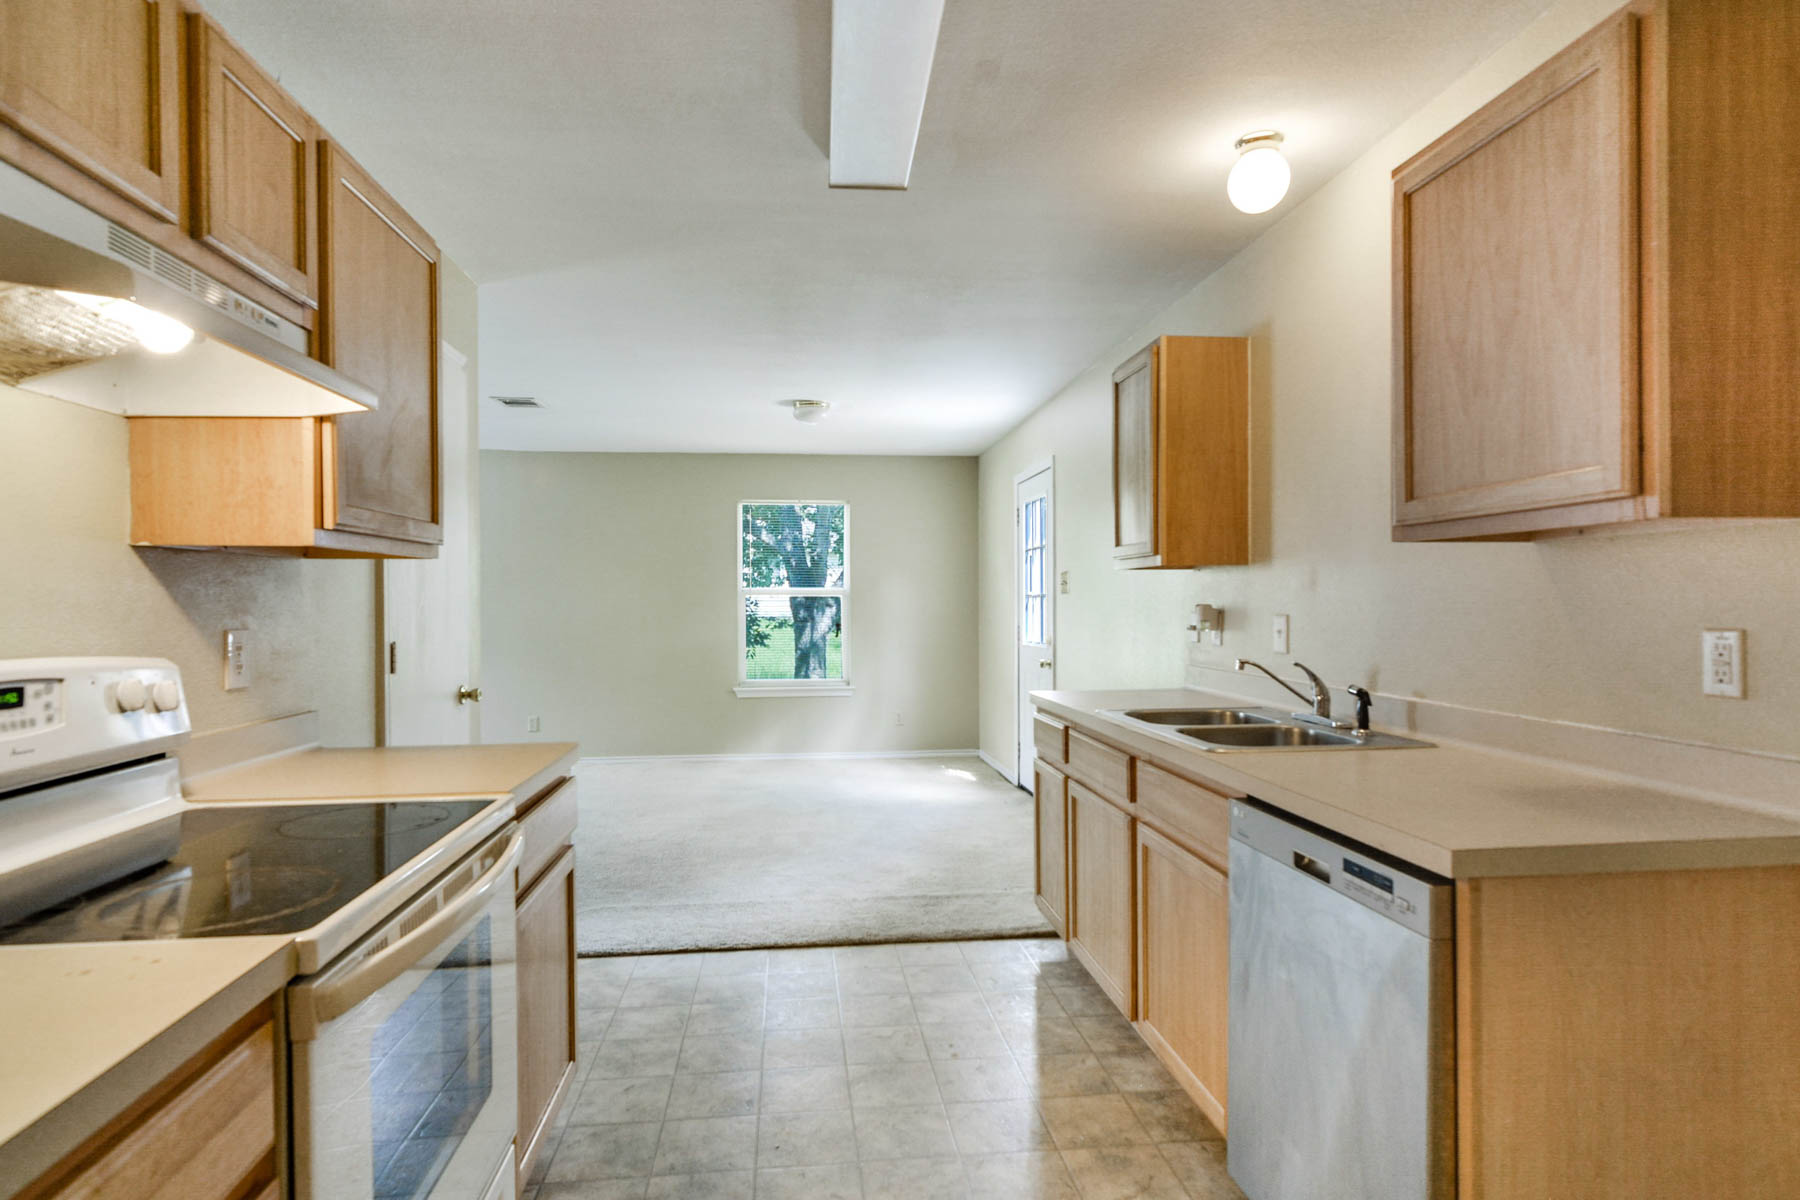 Additional photo for property listing at Wonderful Family Home in Converse 7415 Coers Blvd Converse, Texas 78109 Estados Unidos